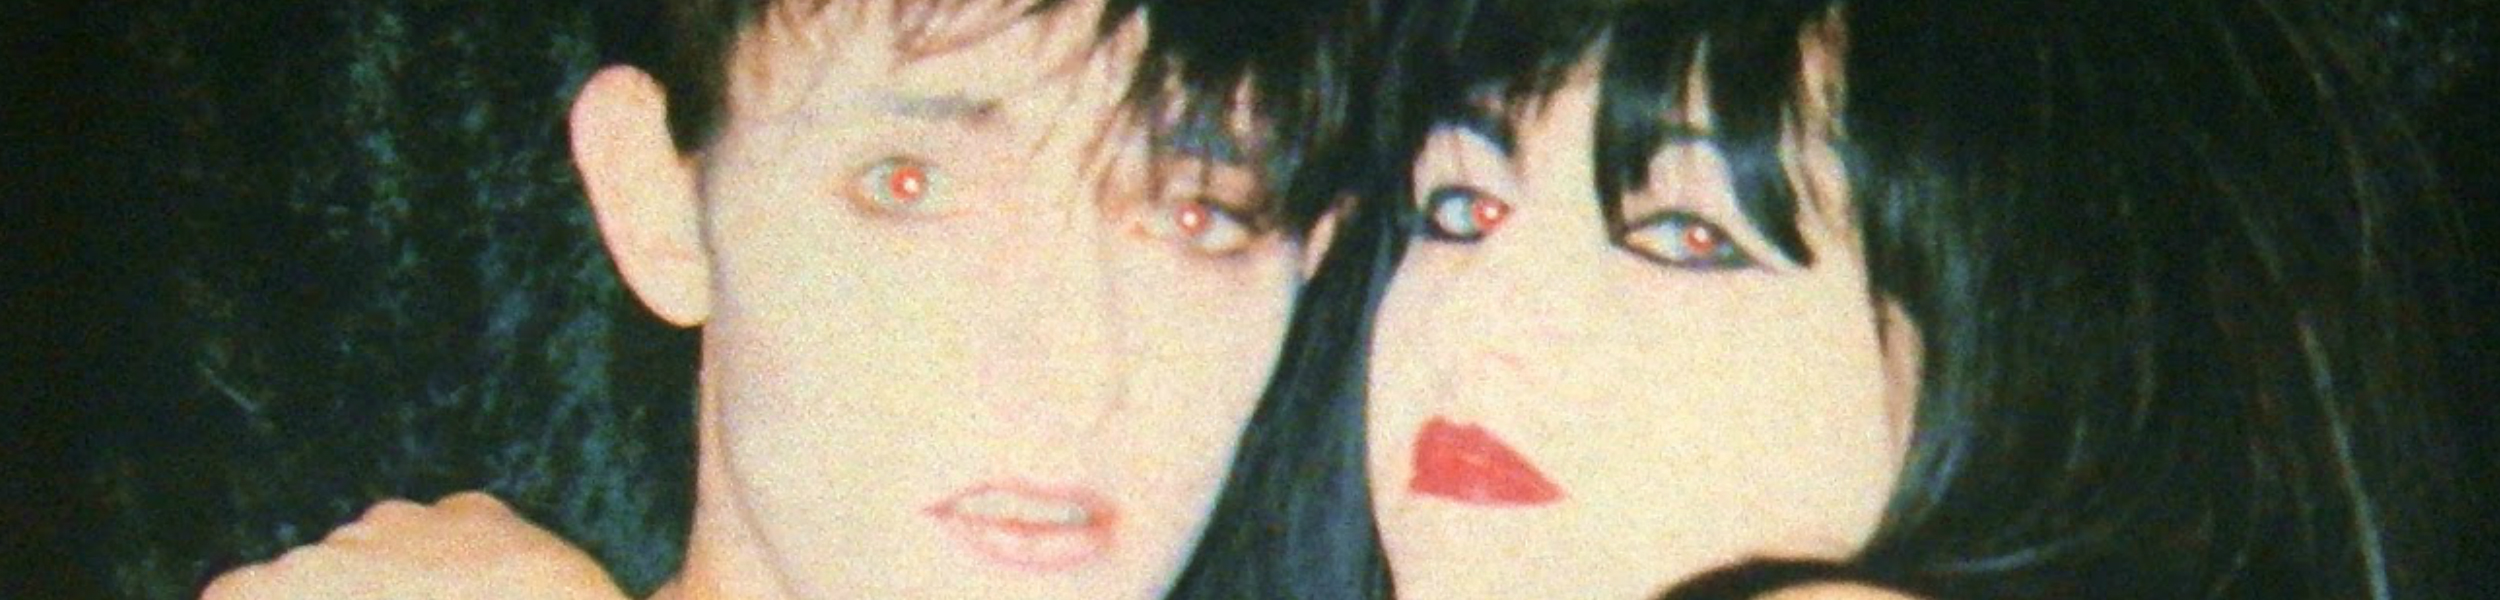 Rowland S Howard / Lydia Lunch - Some Velvet Morning